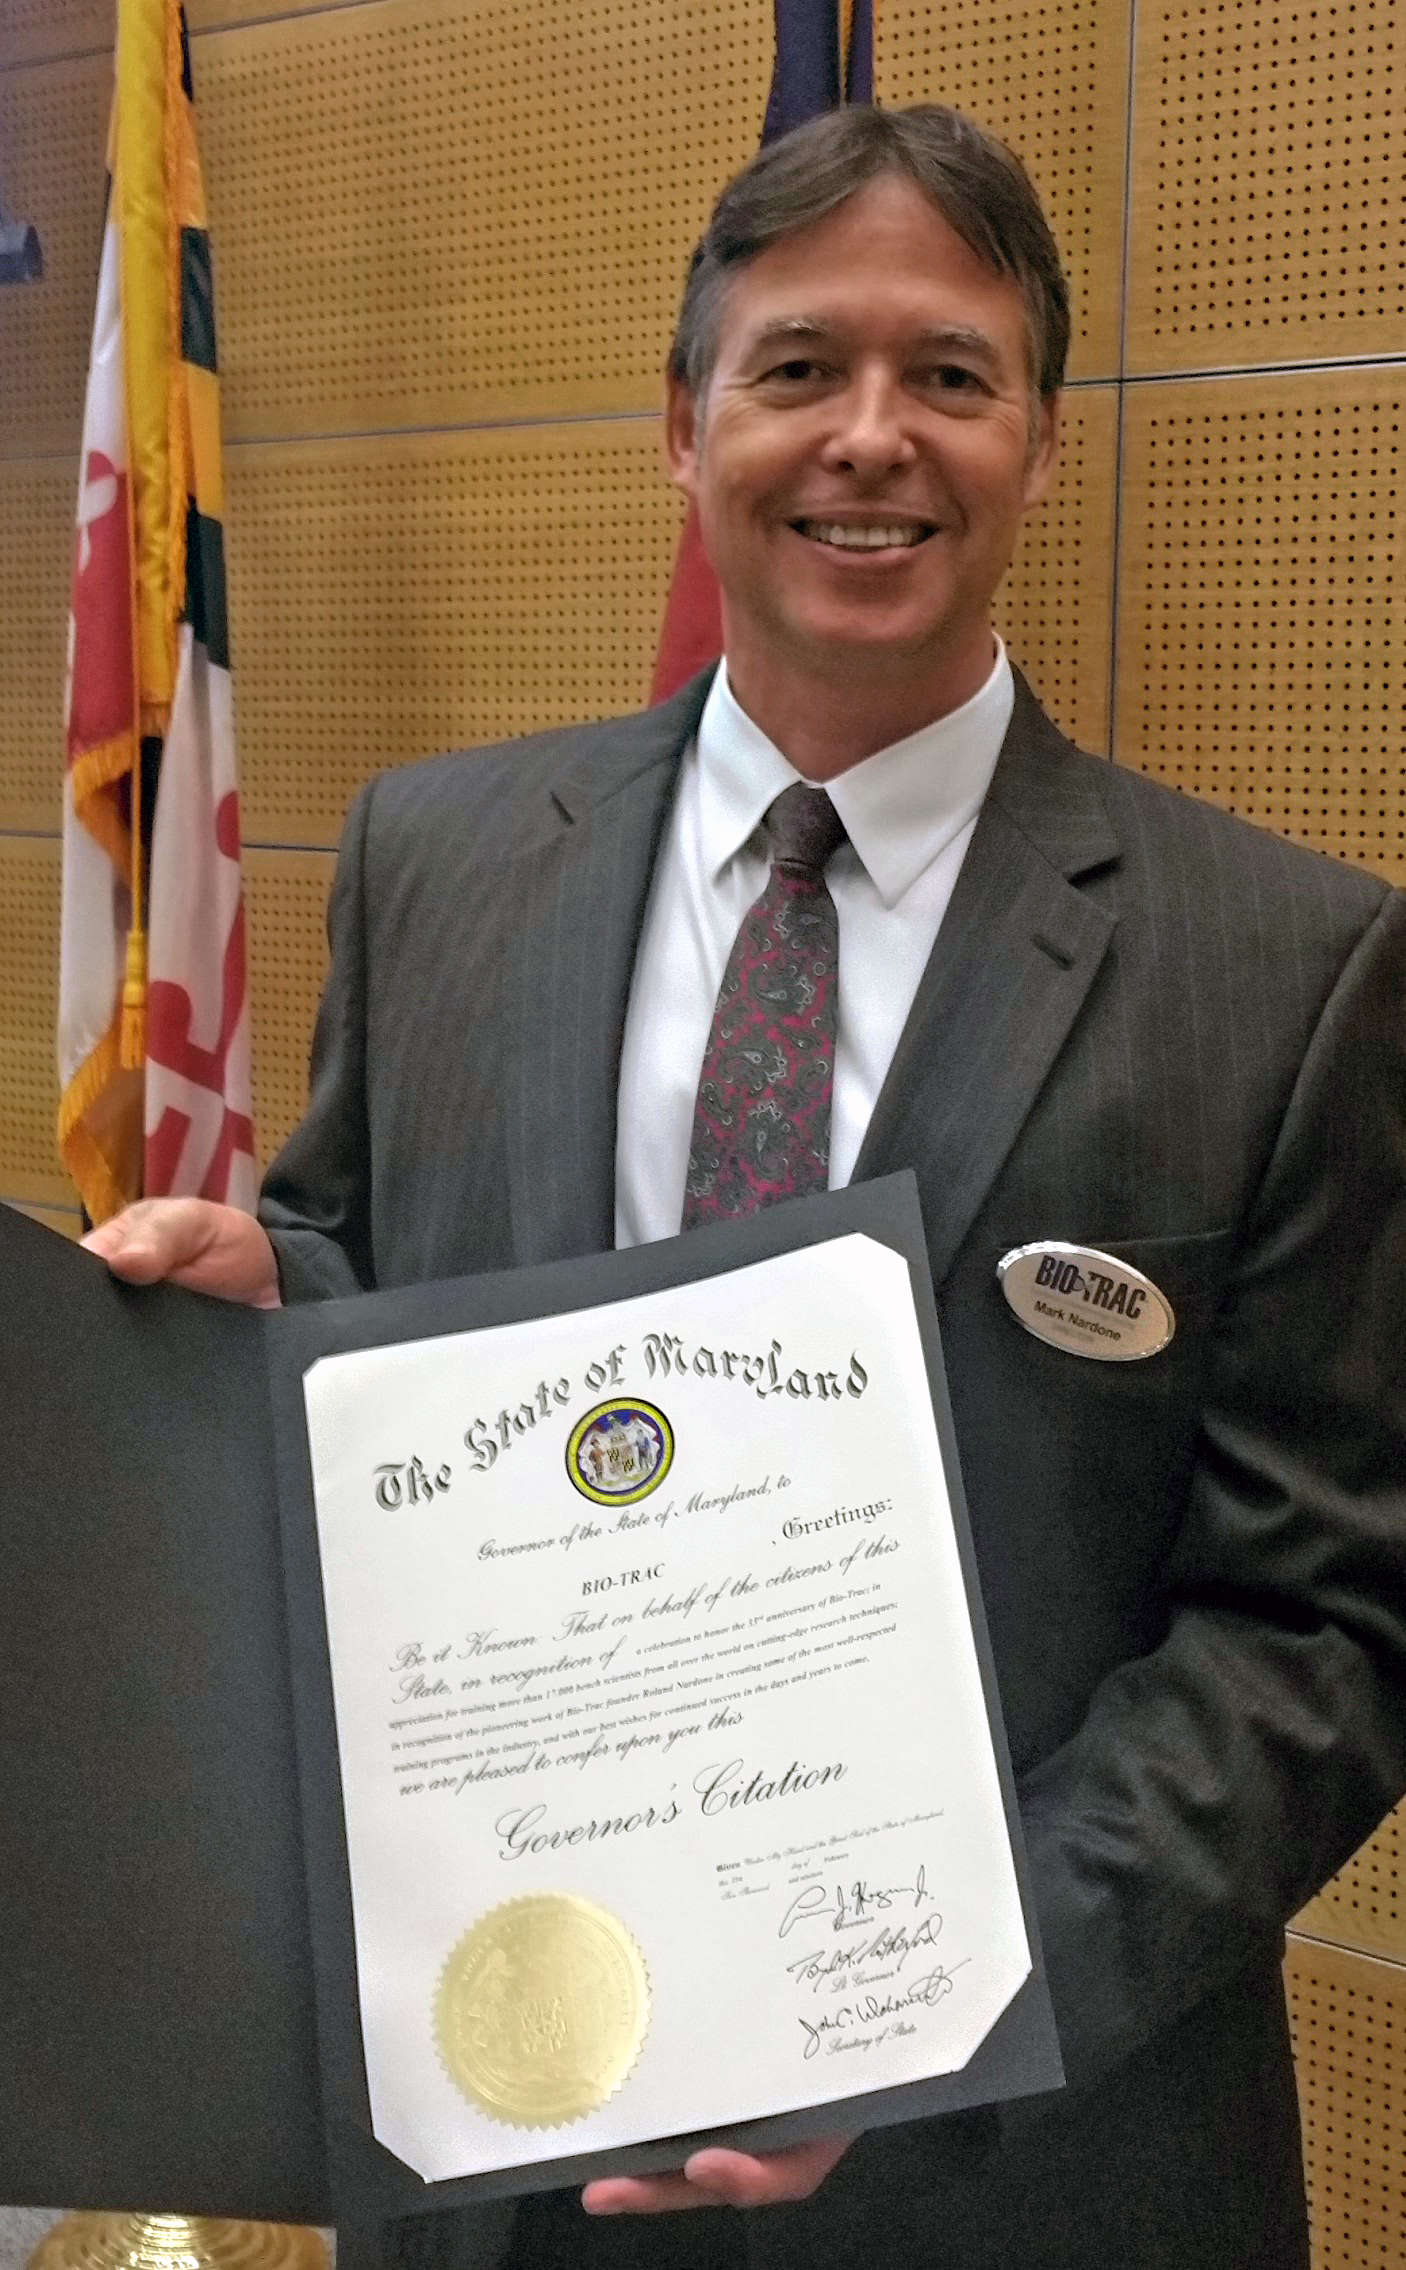 BioTrac Receives Governor's Citation